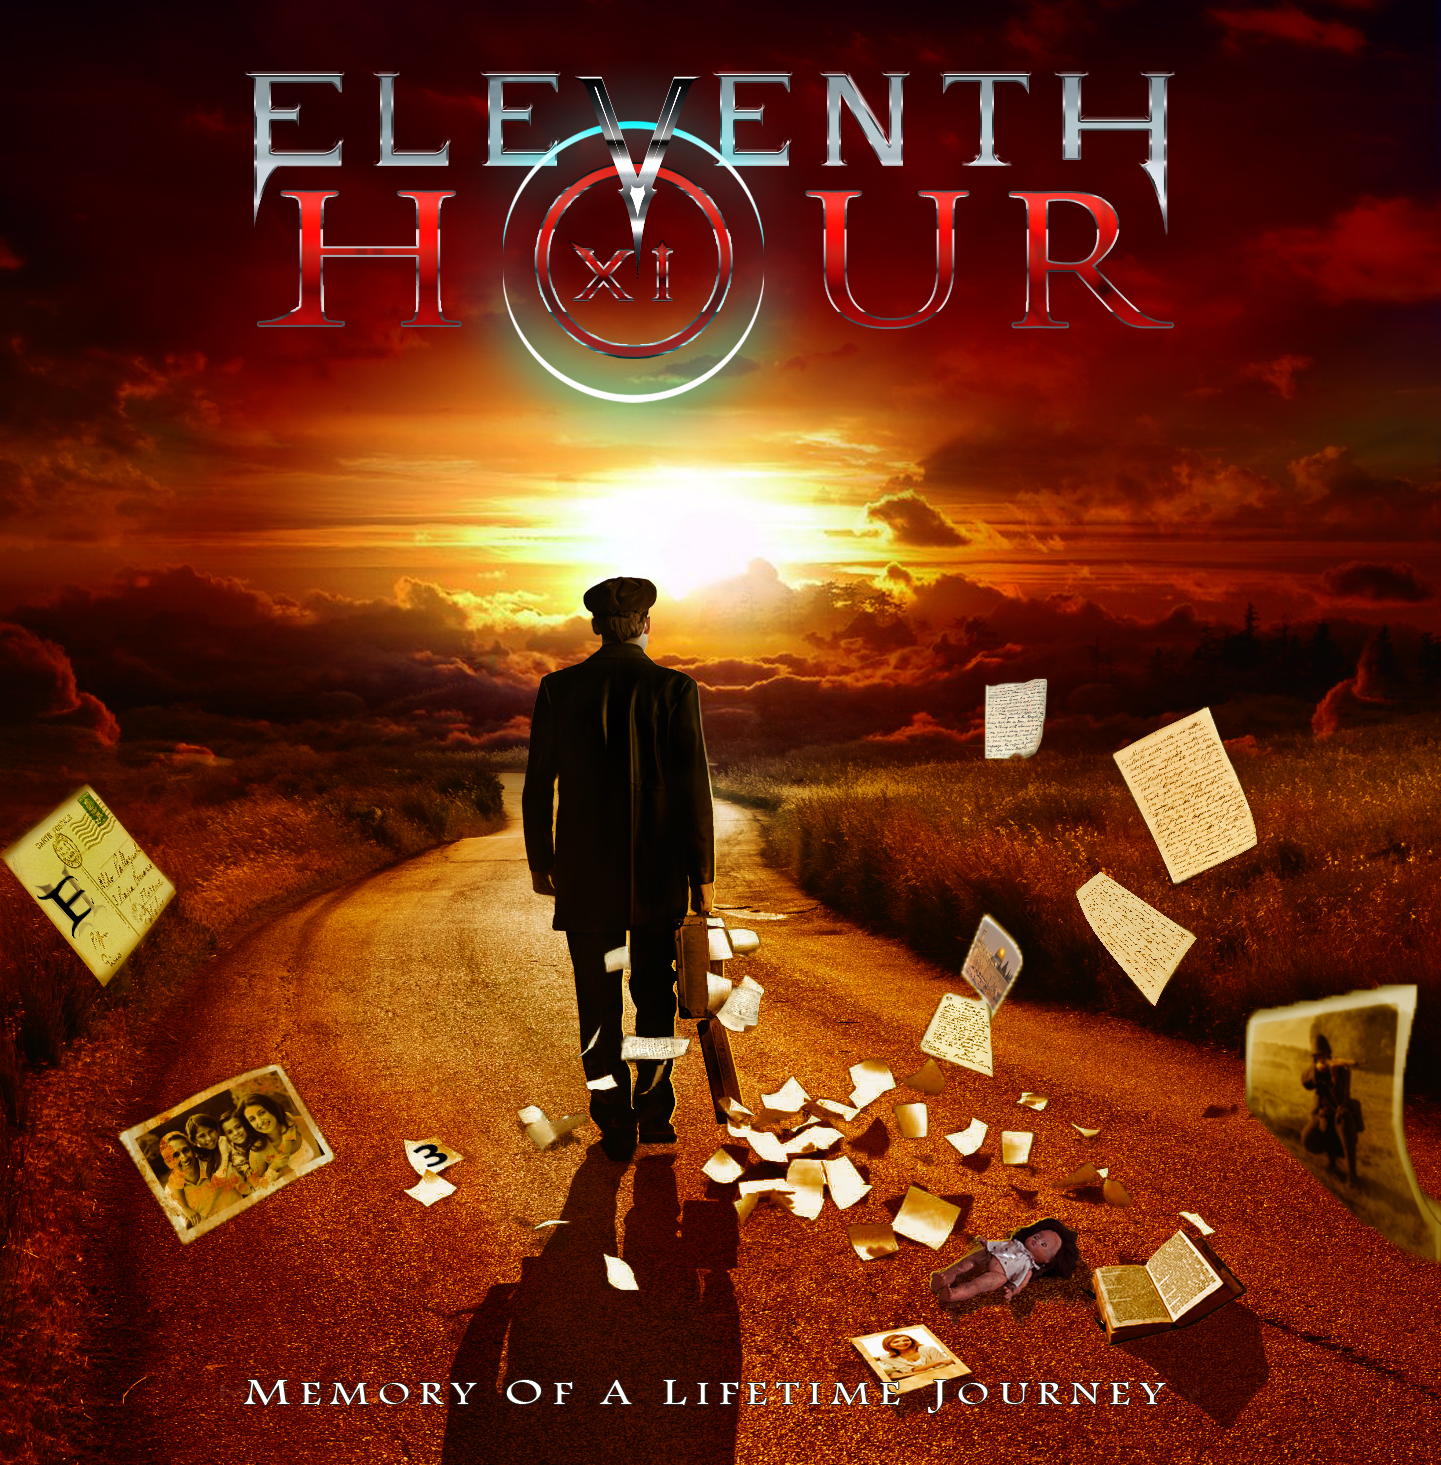 eleventh hour artwork